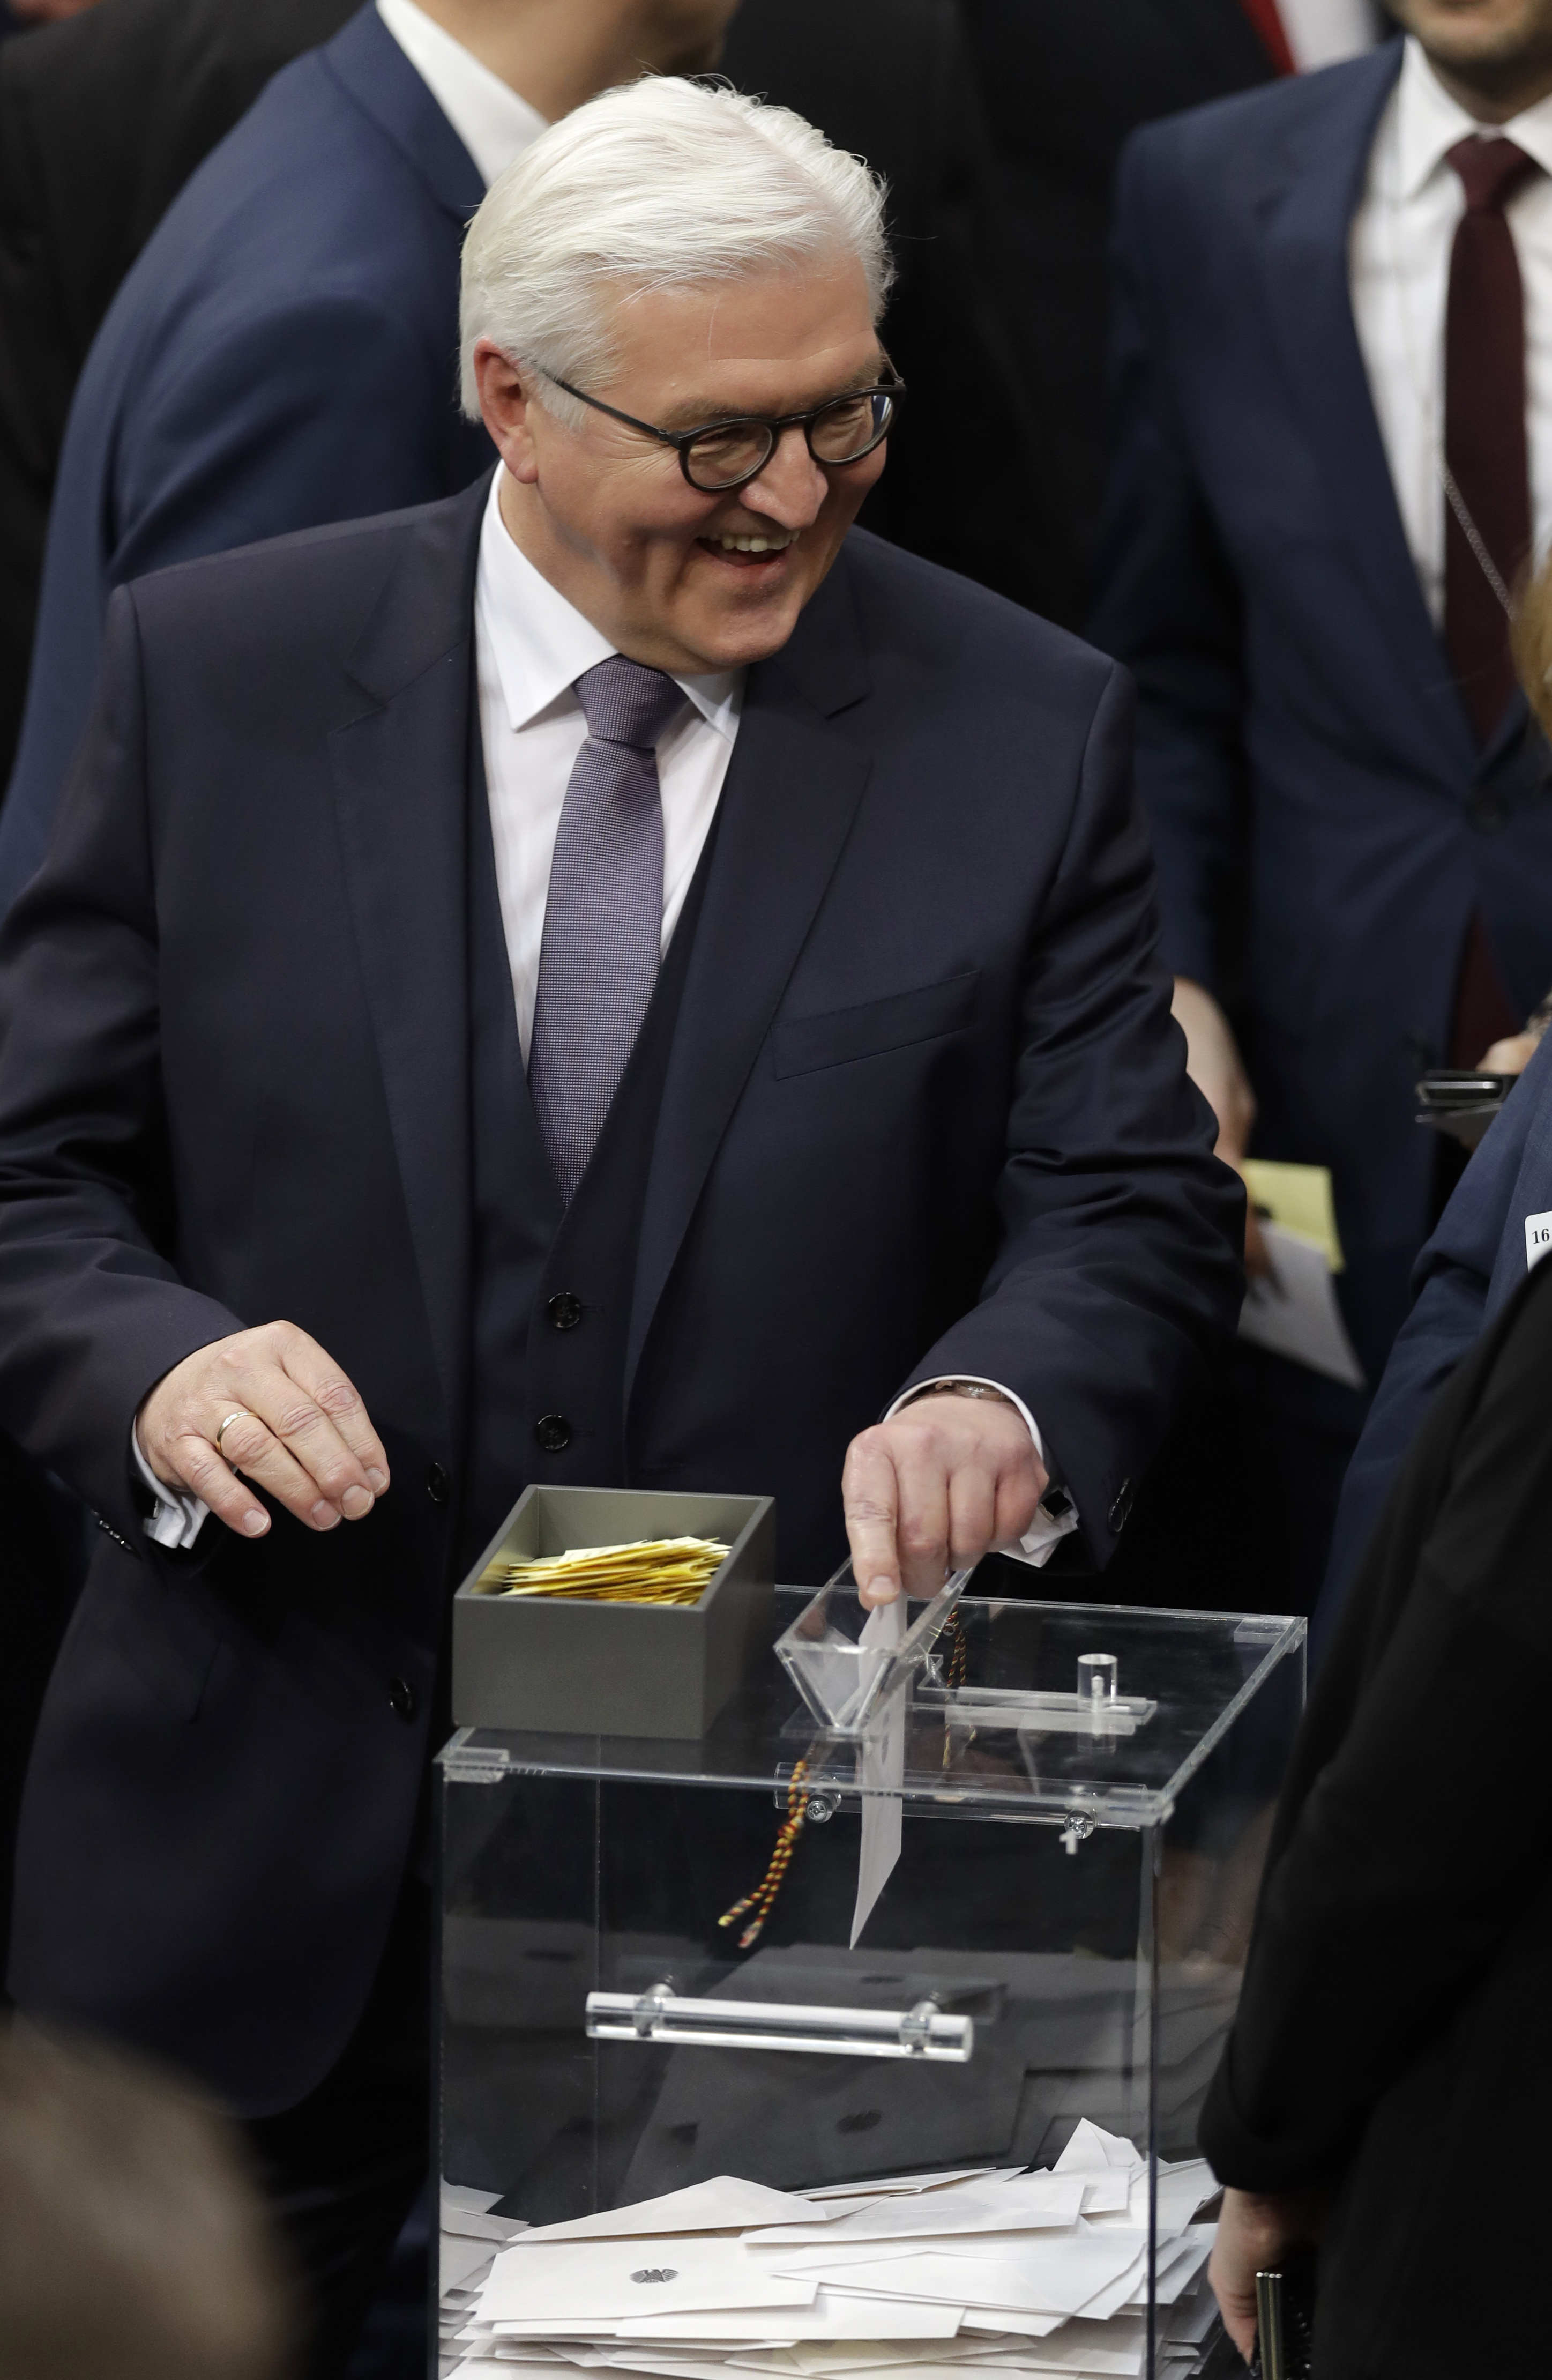 German presidential candidate Frank-Walter Steinmeier casts his ballot when a German parliamentary assembly came together to elect the country's new president in Berlin, Germany on Feb. 12, 2017. (AP Photo/Michael Sohn)